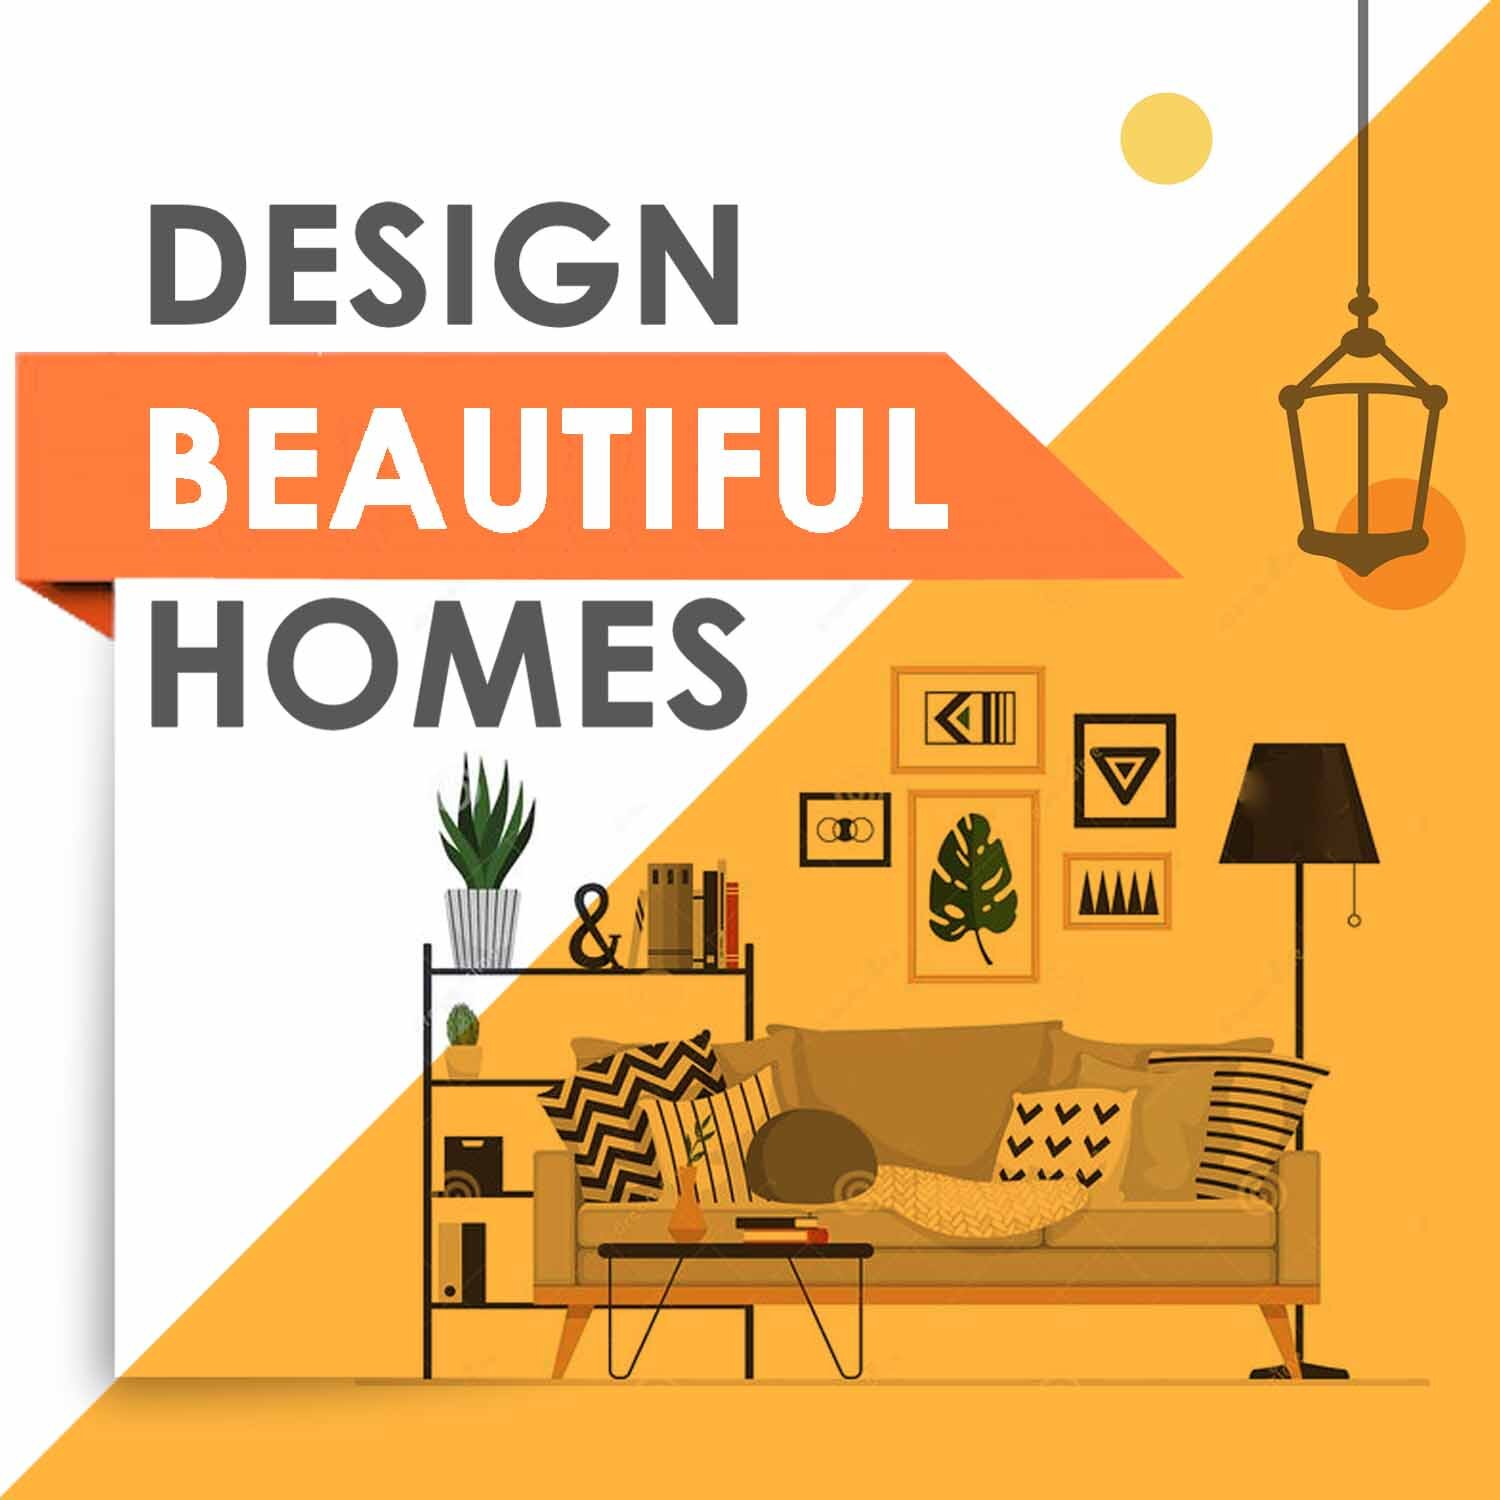 House Design Architecture Home Interior Design I Ghaziabad Chaukor Best Architects Interior Designers In Noida For Villa Design House Design And Office Interior Design